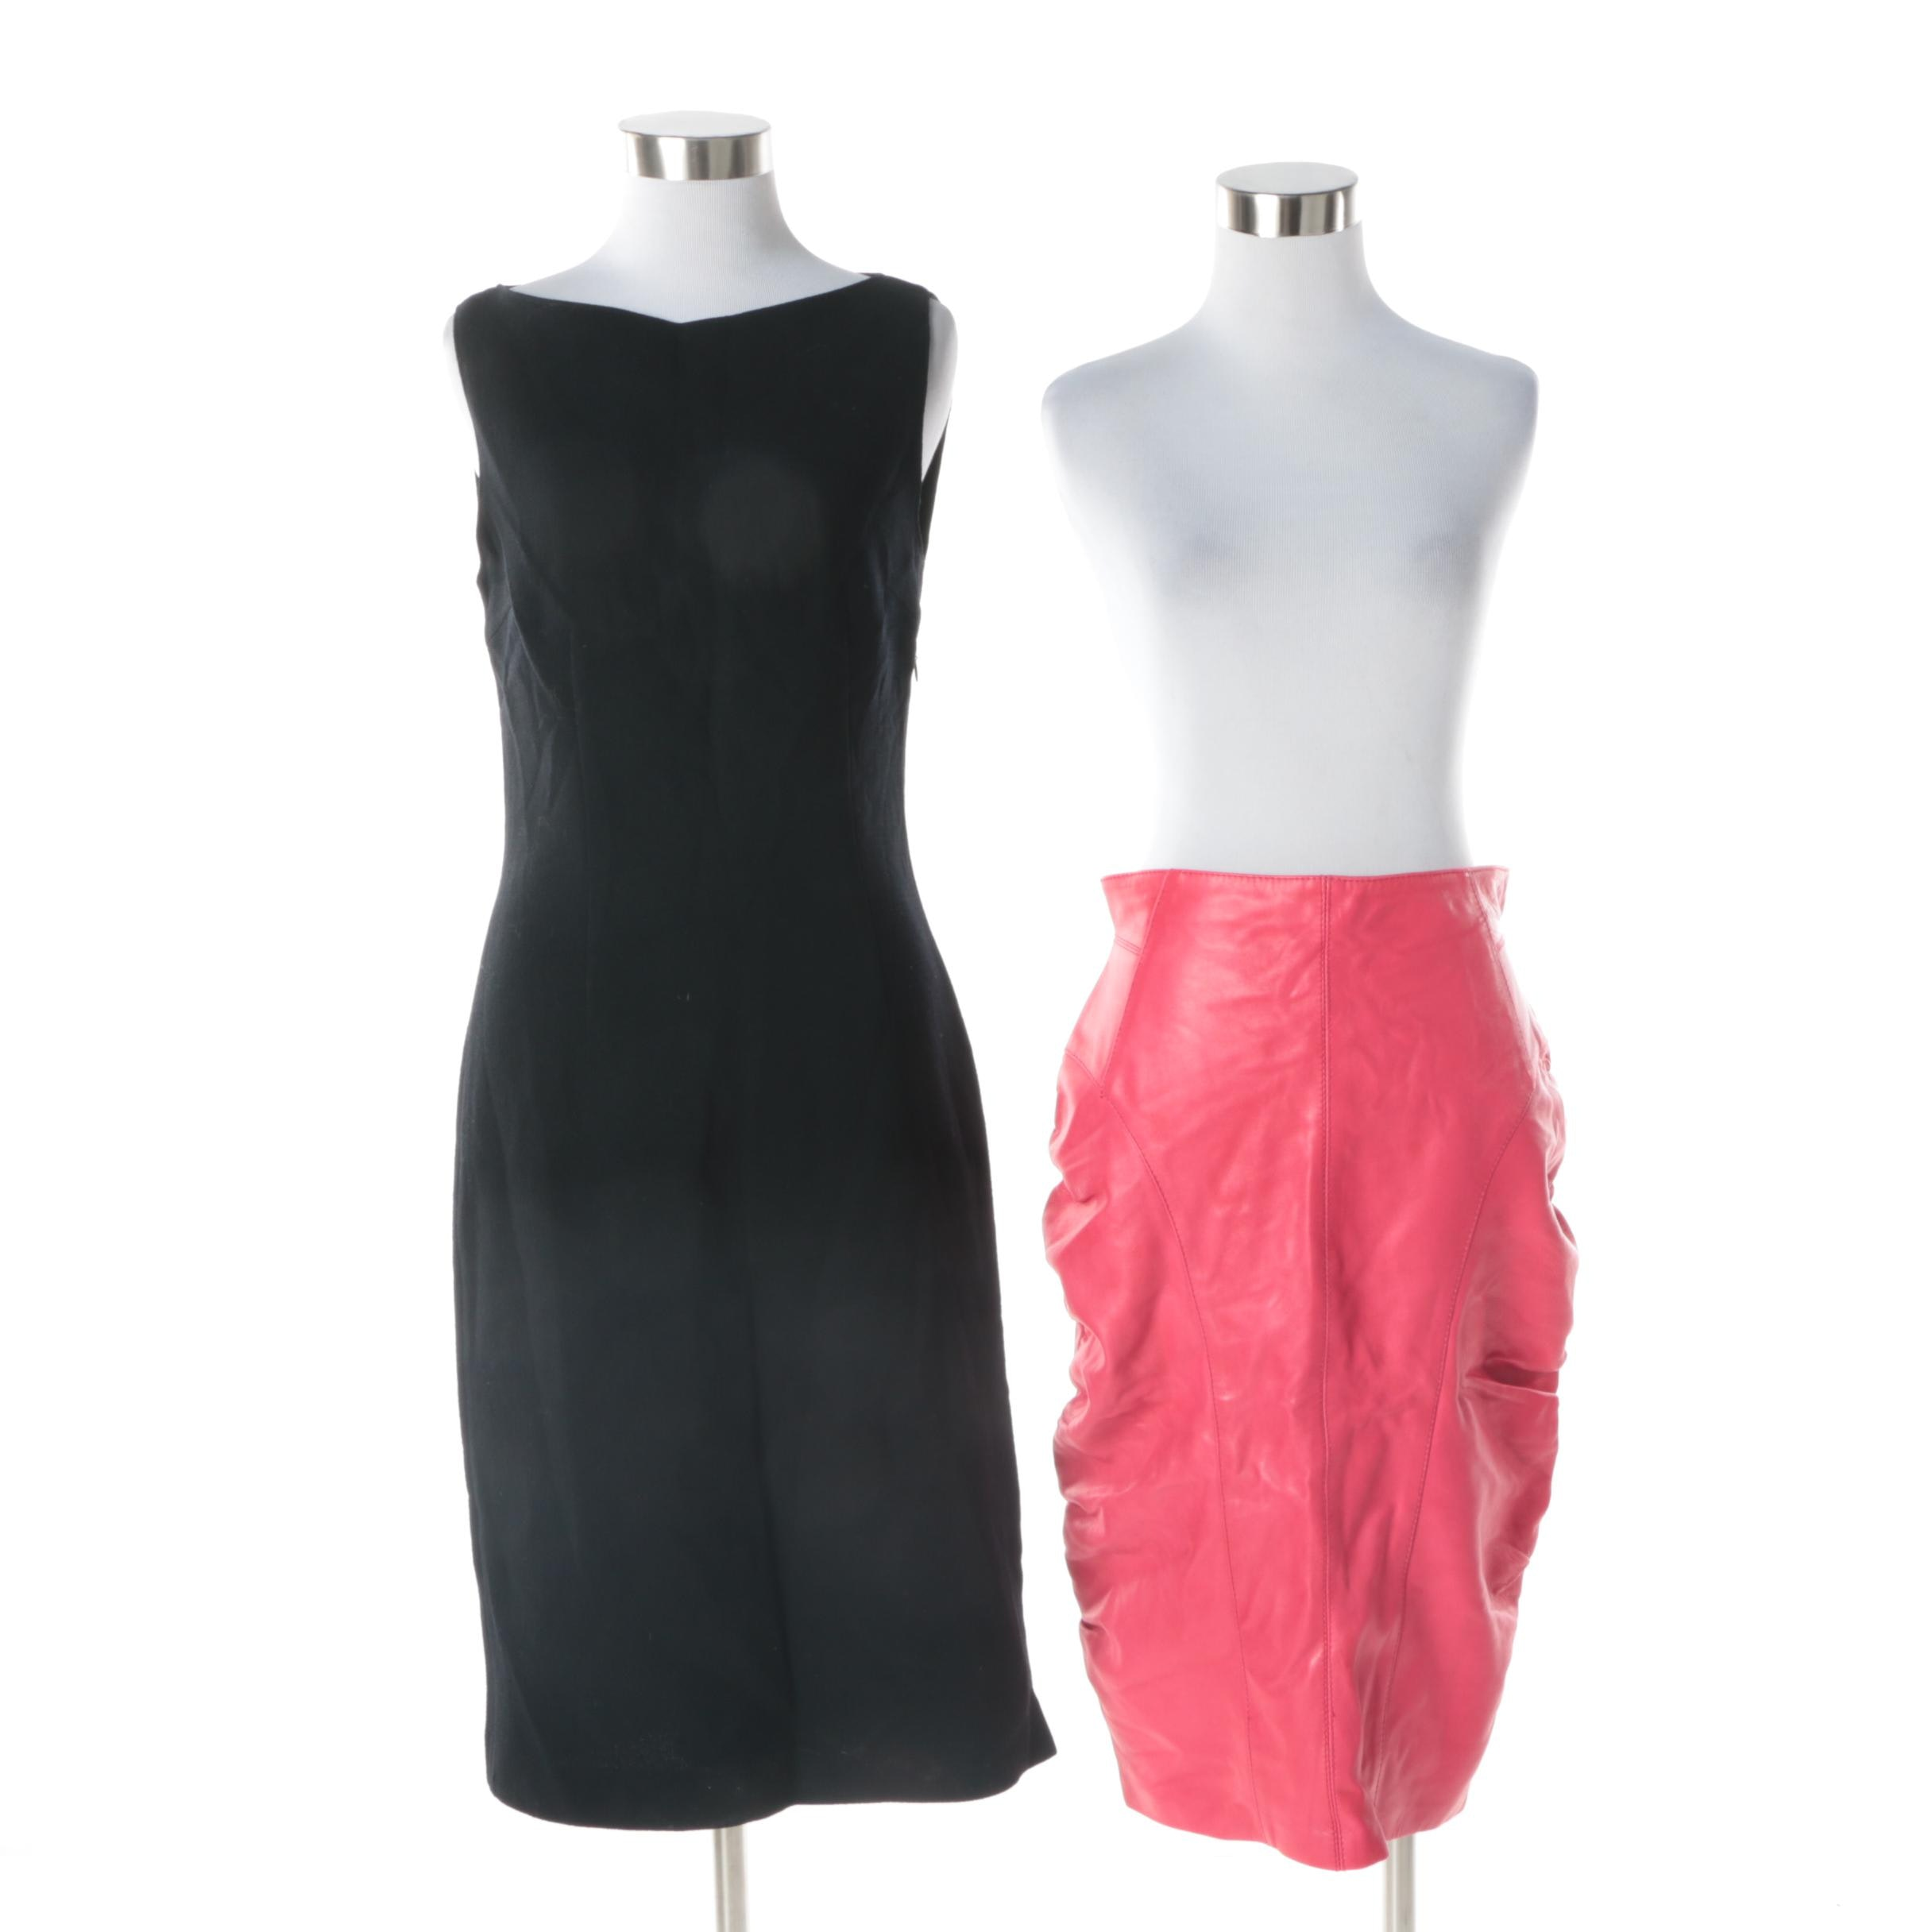 Luca Luca Black Sleeveless Cocktail Dress and Pink Leather Skirt